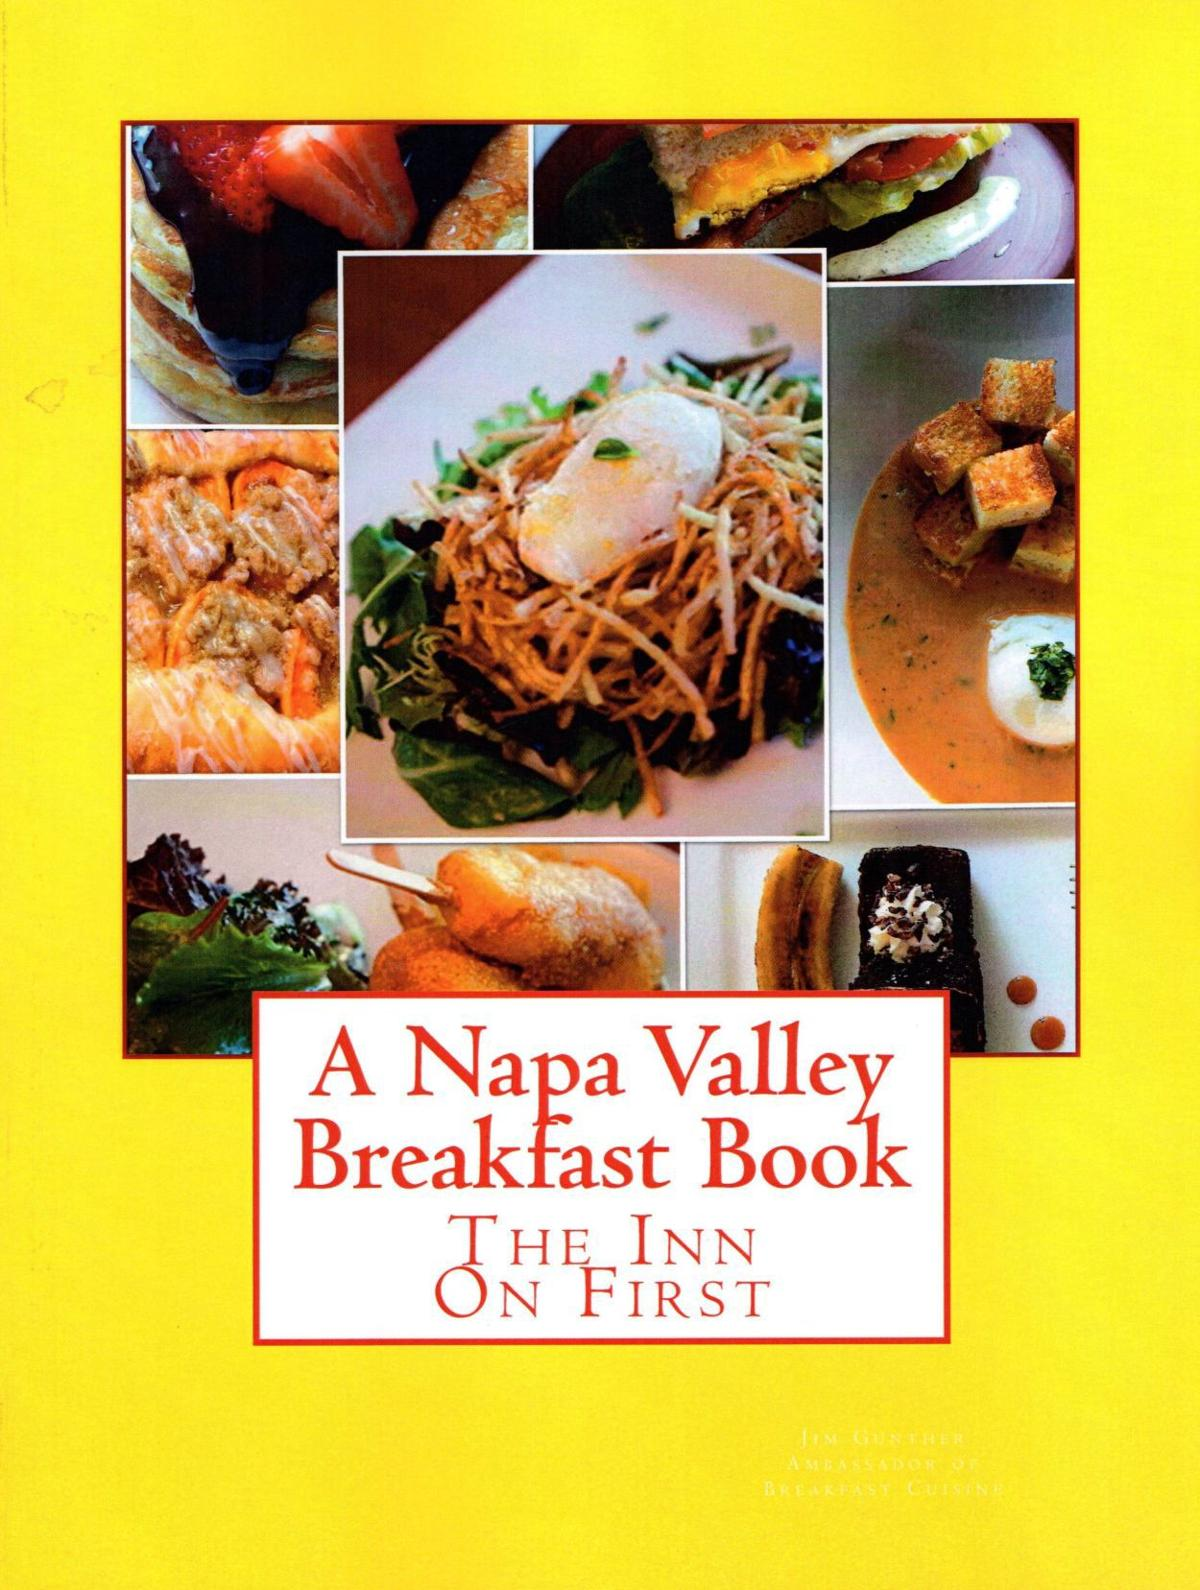 The infinite possibilities of breakfast a napa valley breakfast a napa valley breakfast book by jim gunther is a collection of dishes served at the inn on first street in napa forumfinder Images